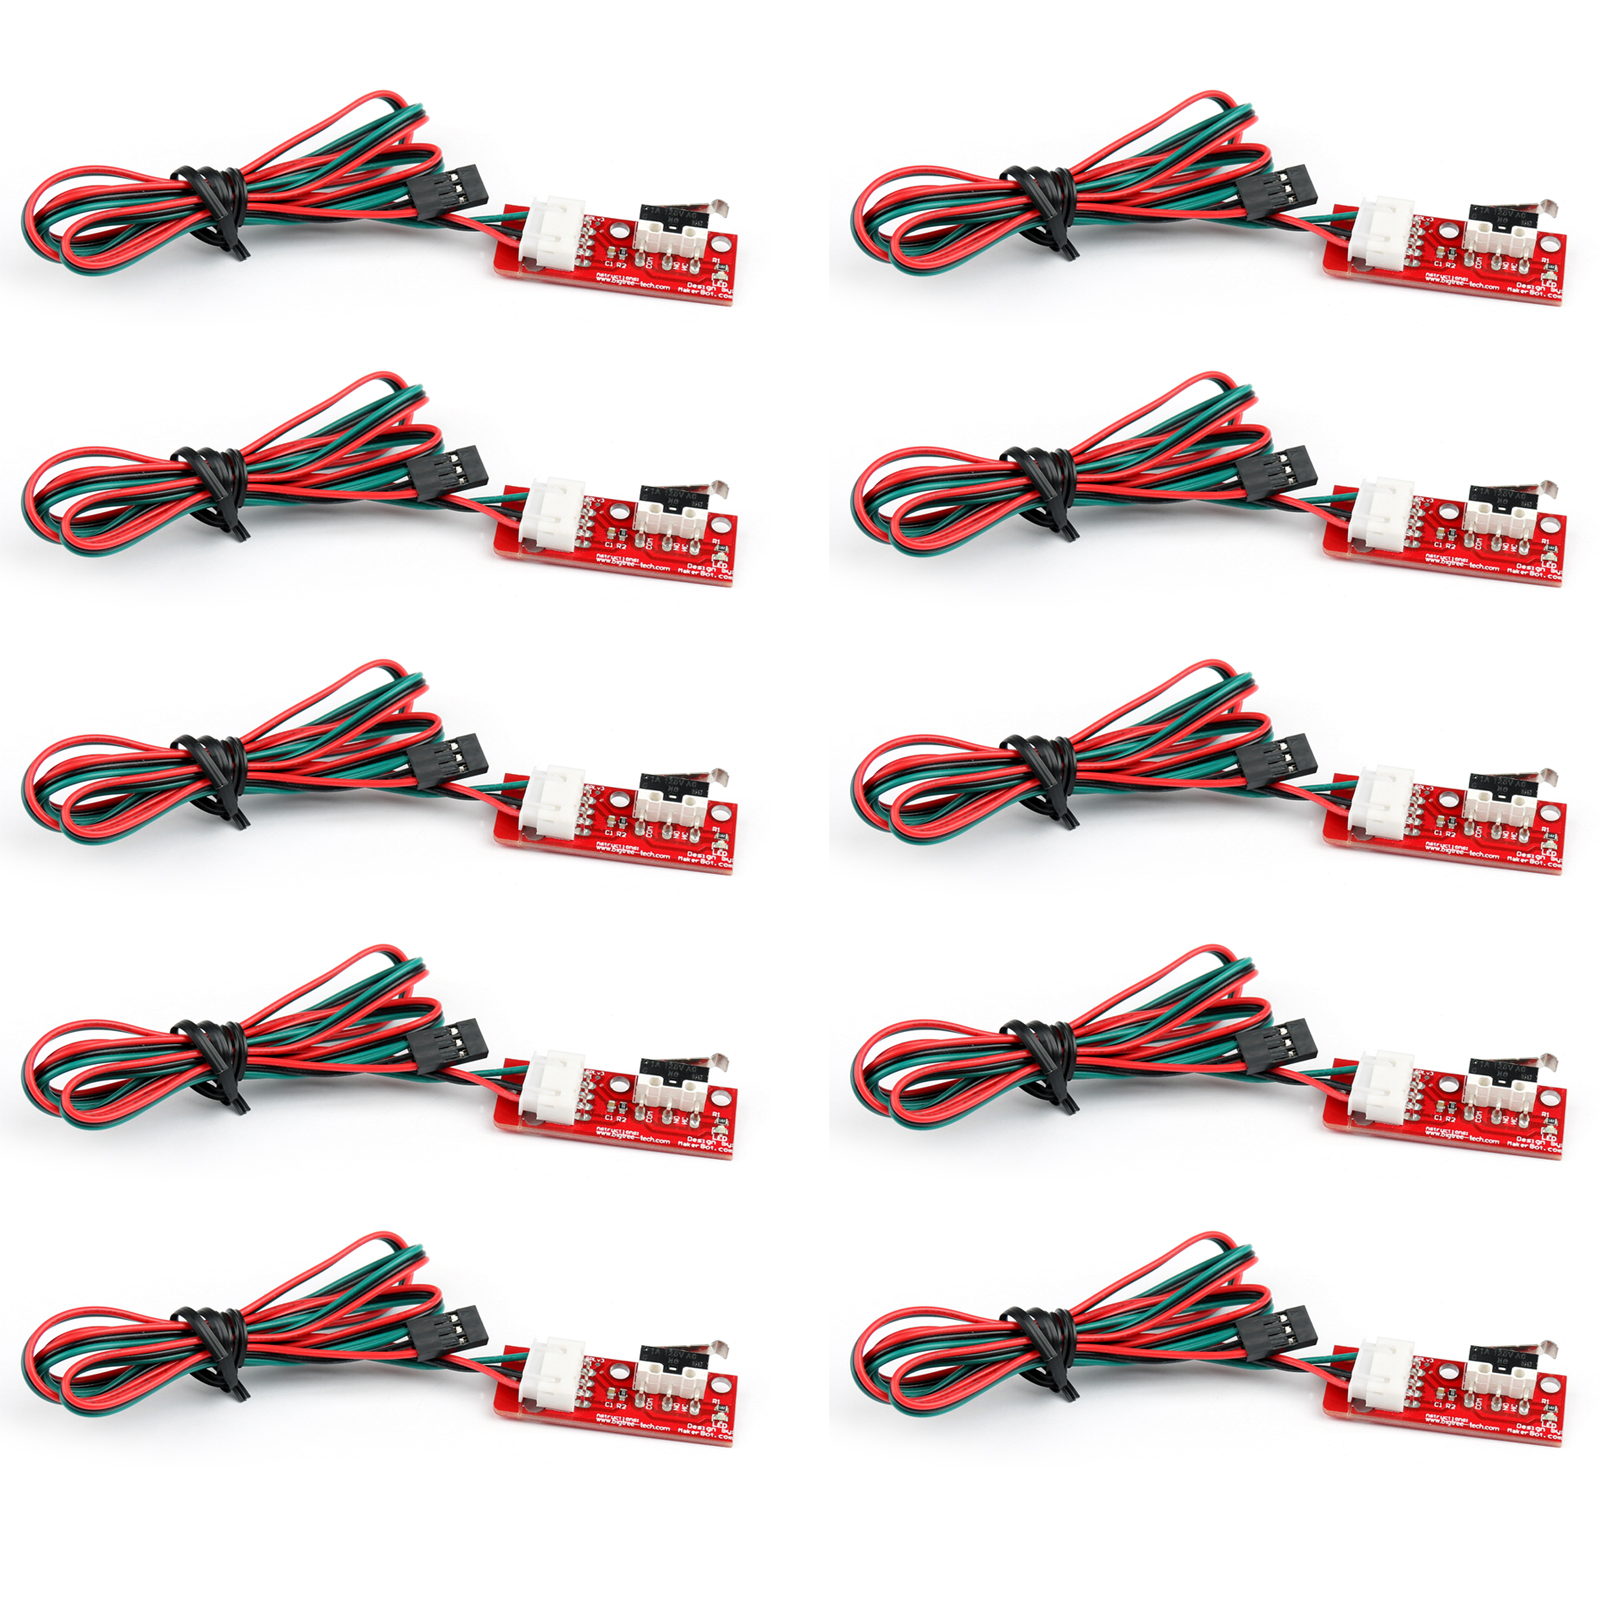 3x Limit endstop mechanical printer switch with 70cm cable for Reprap 3D Drucker